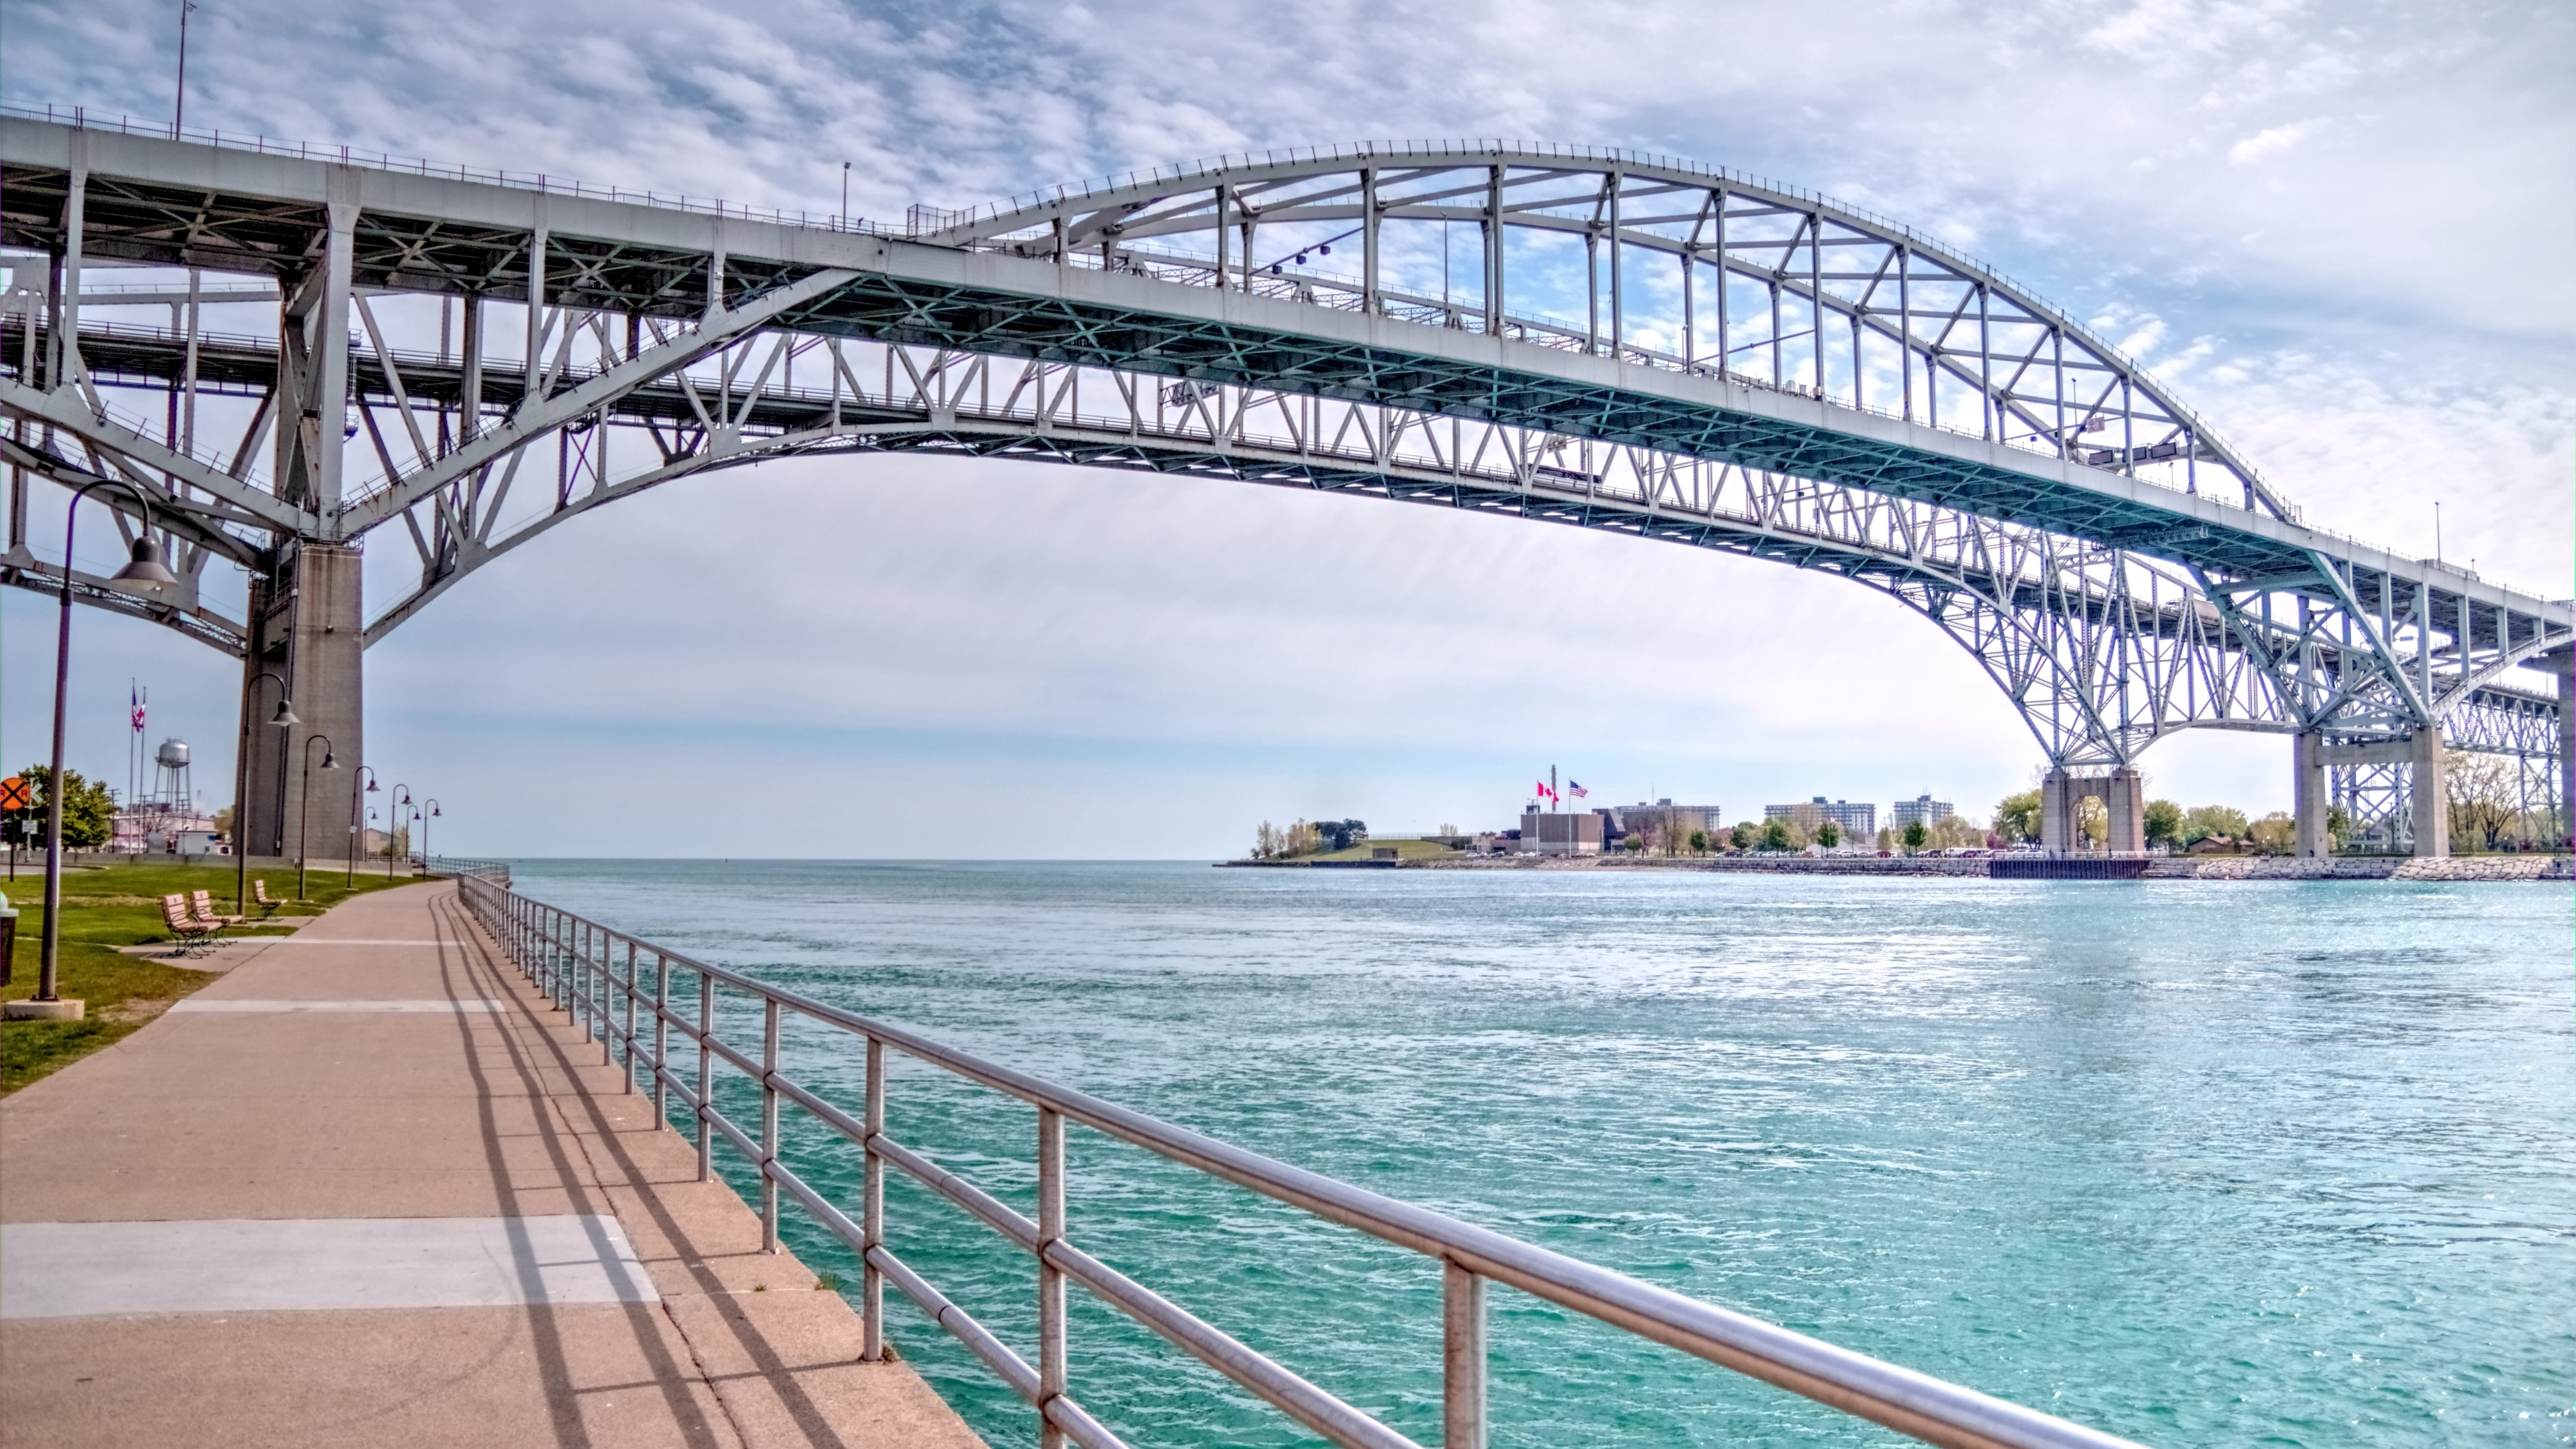 U.S. Coast Guard warns of dangers at 'unsanctioned' Port Huron Float Down